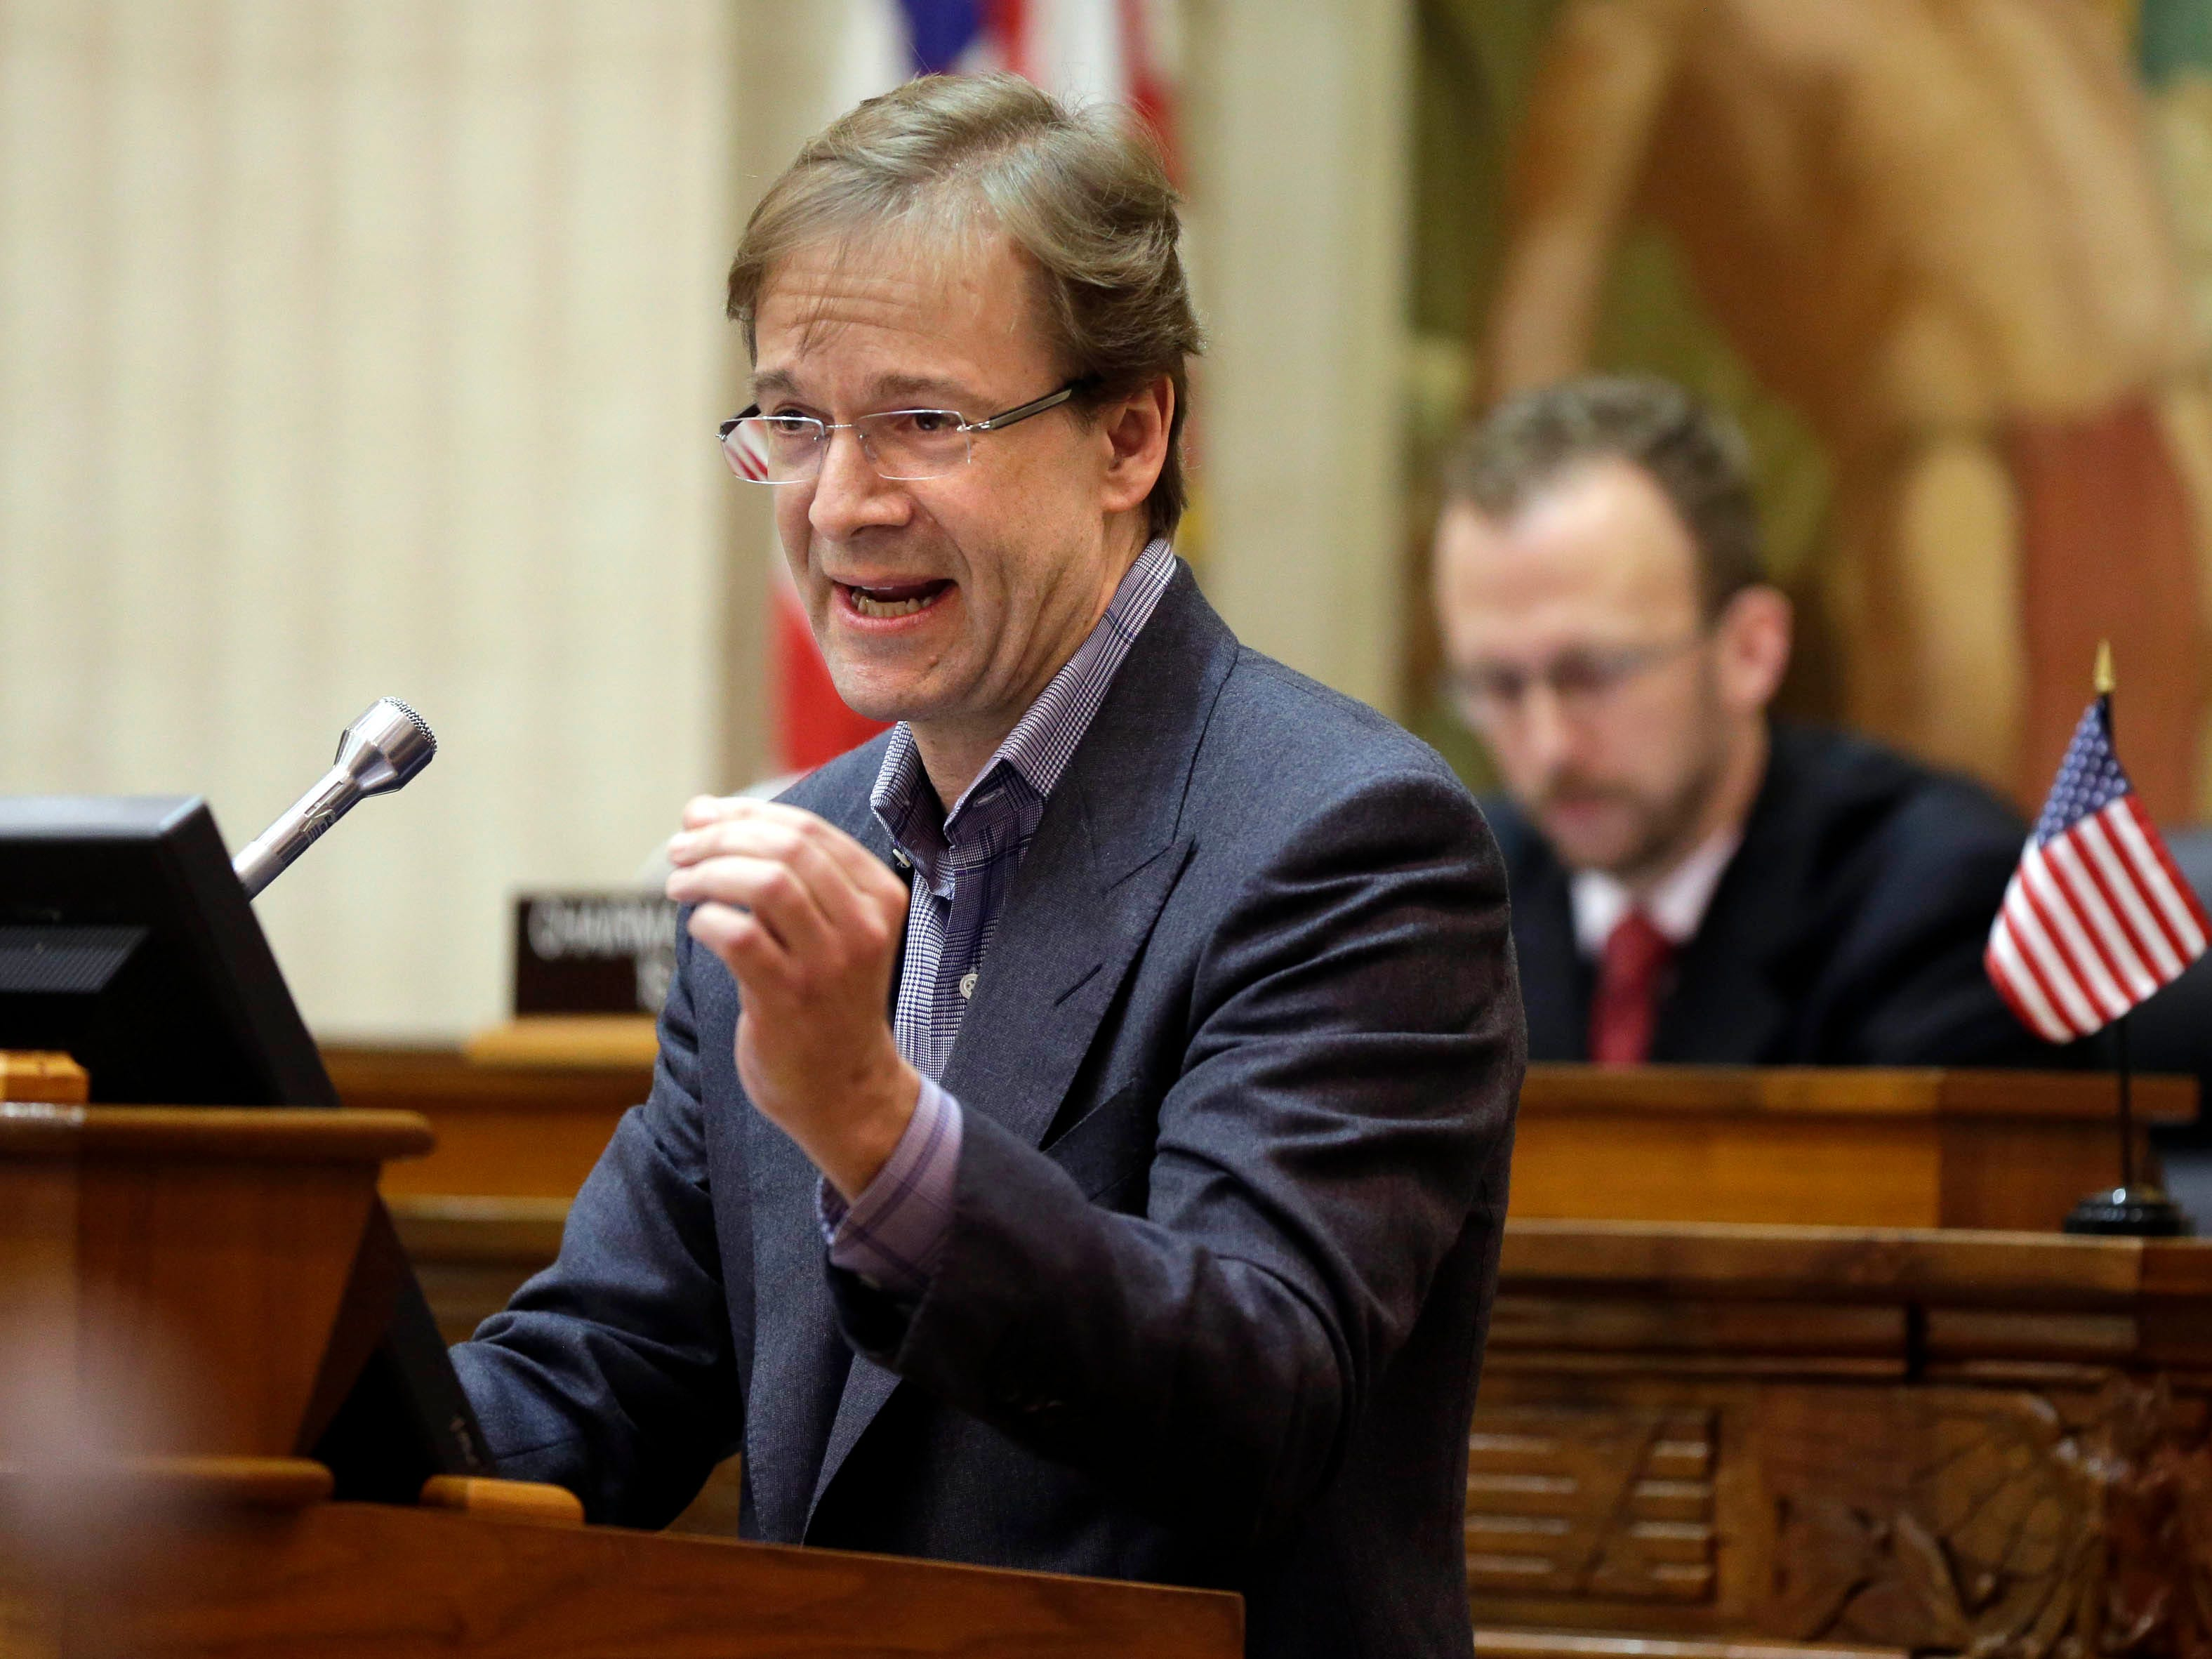 2015: Milwaukee County Executive Chris Abele discussed his proposed 2016 budget at the County Board meeting in the Milwaukee County Courthouse.